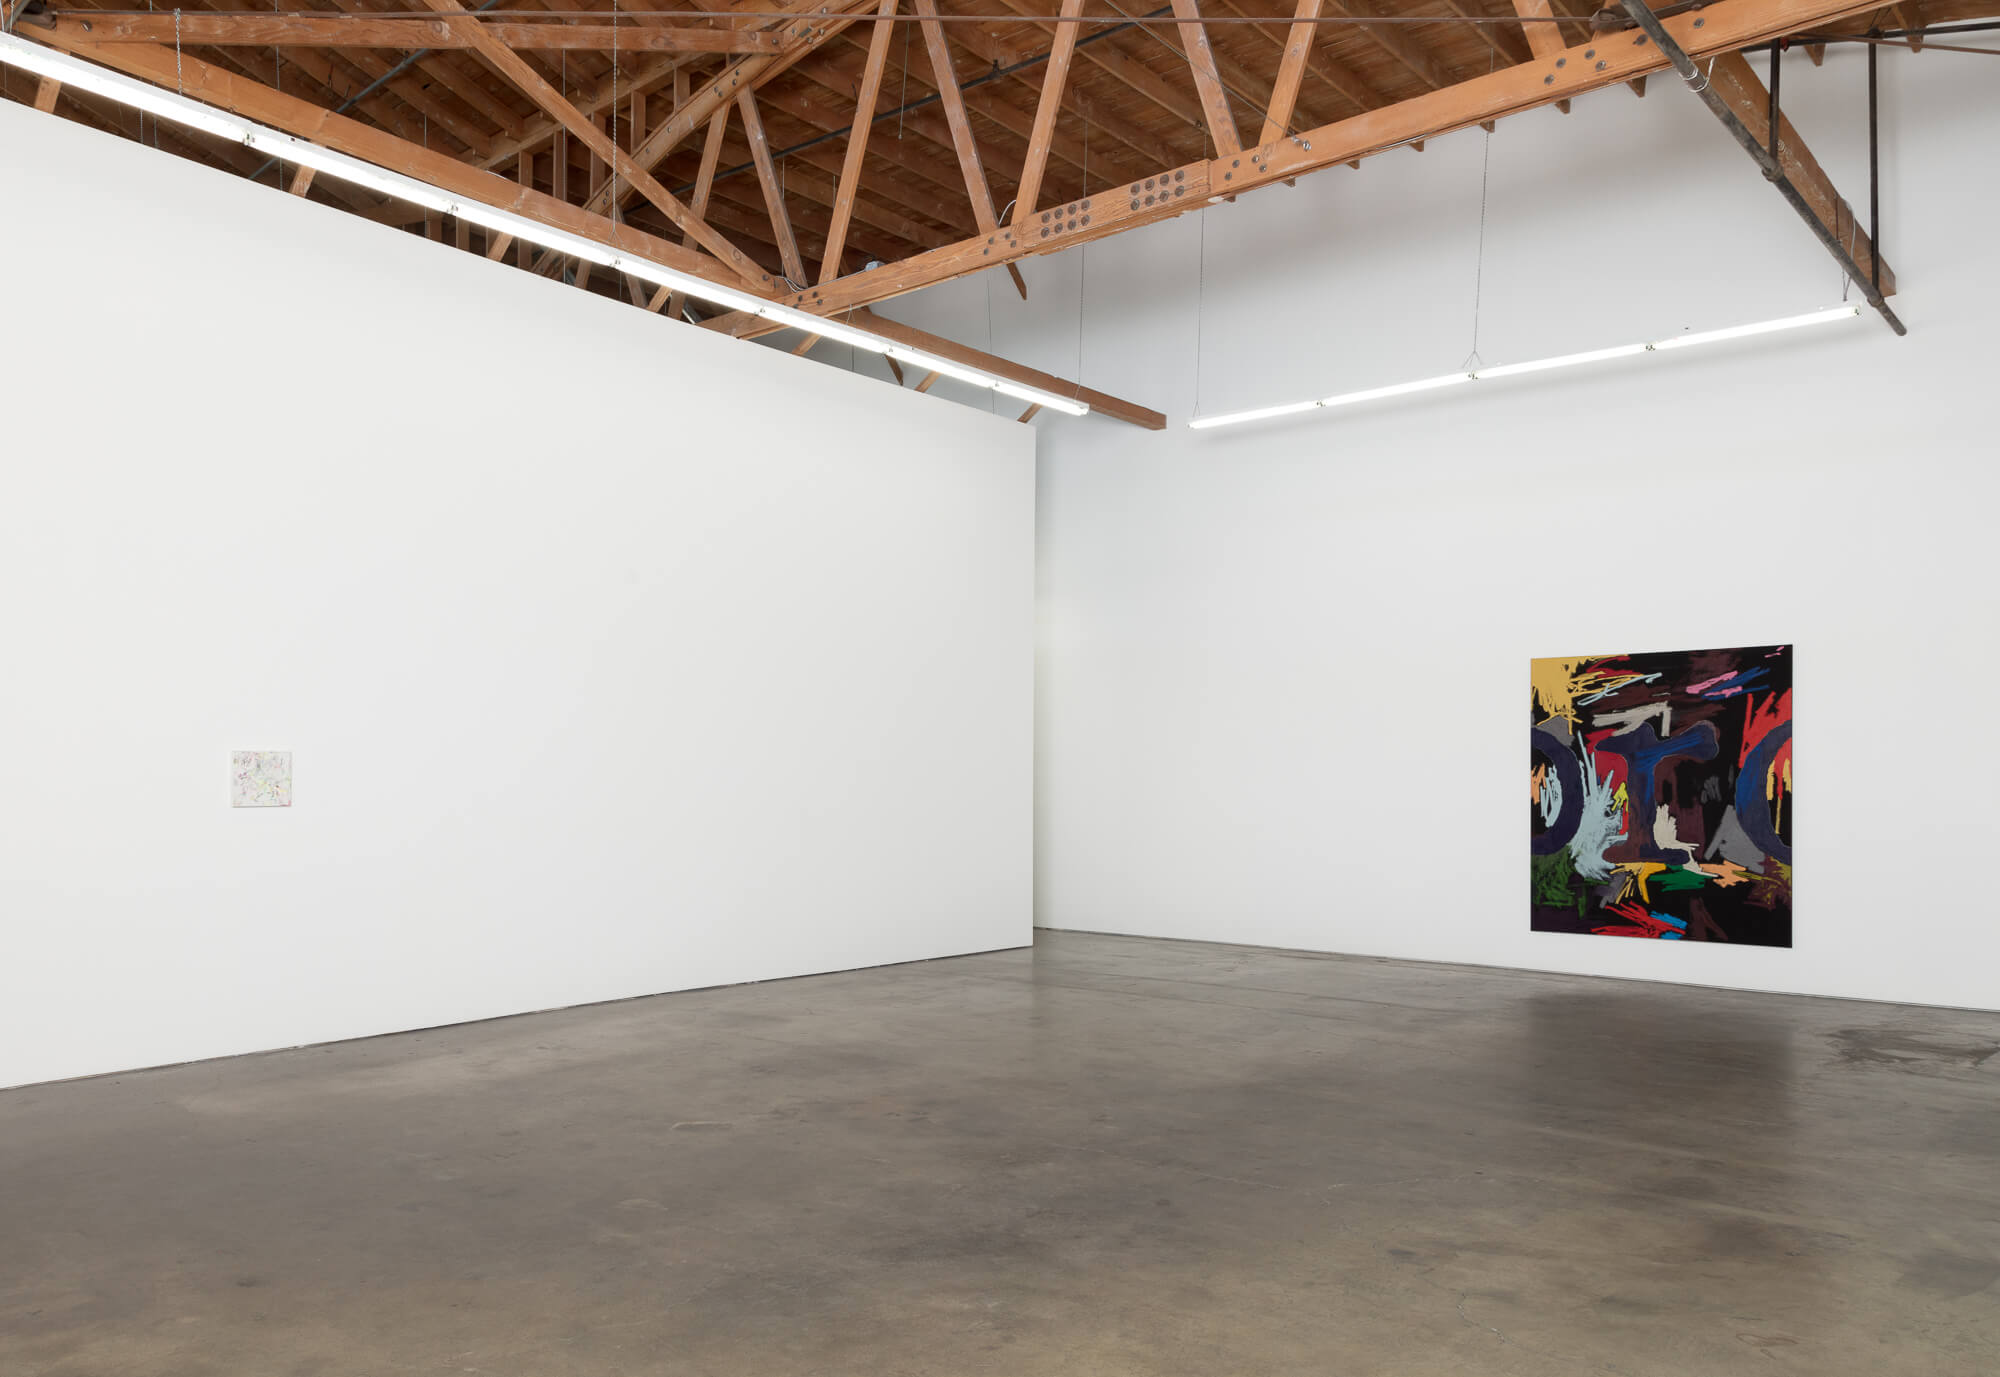 3_William Anastasi, installation view, Ghebaly Gallery